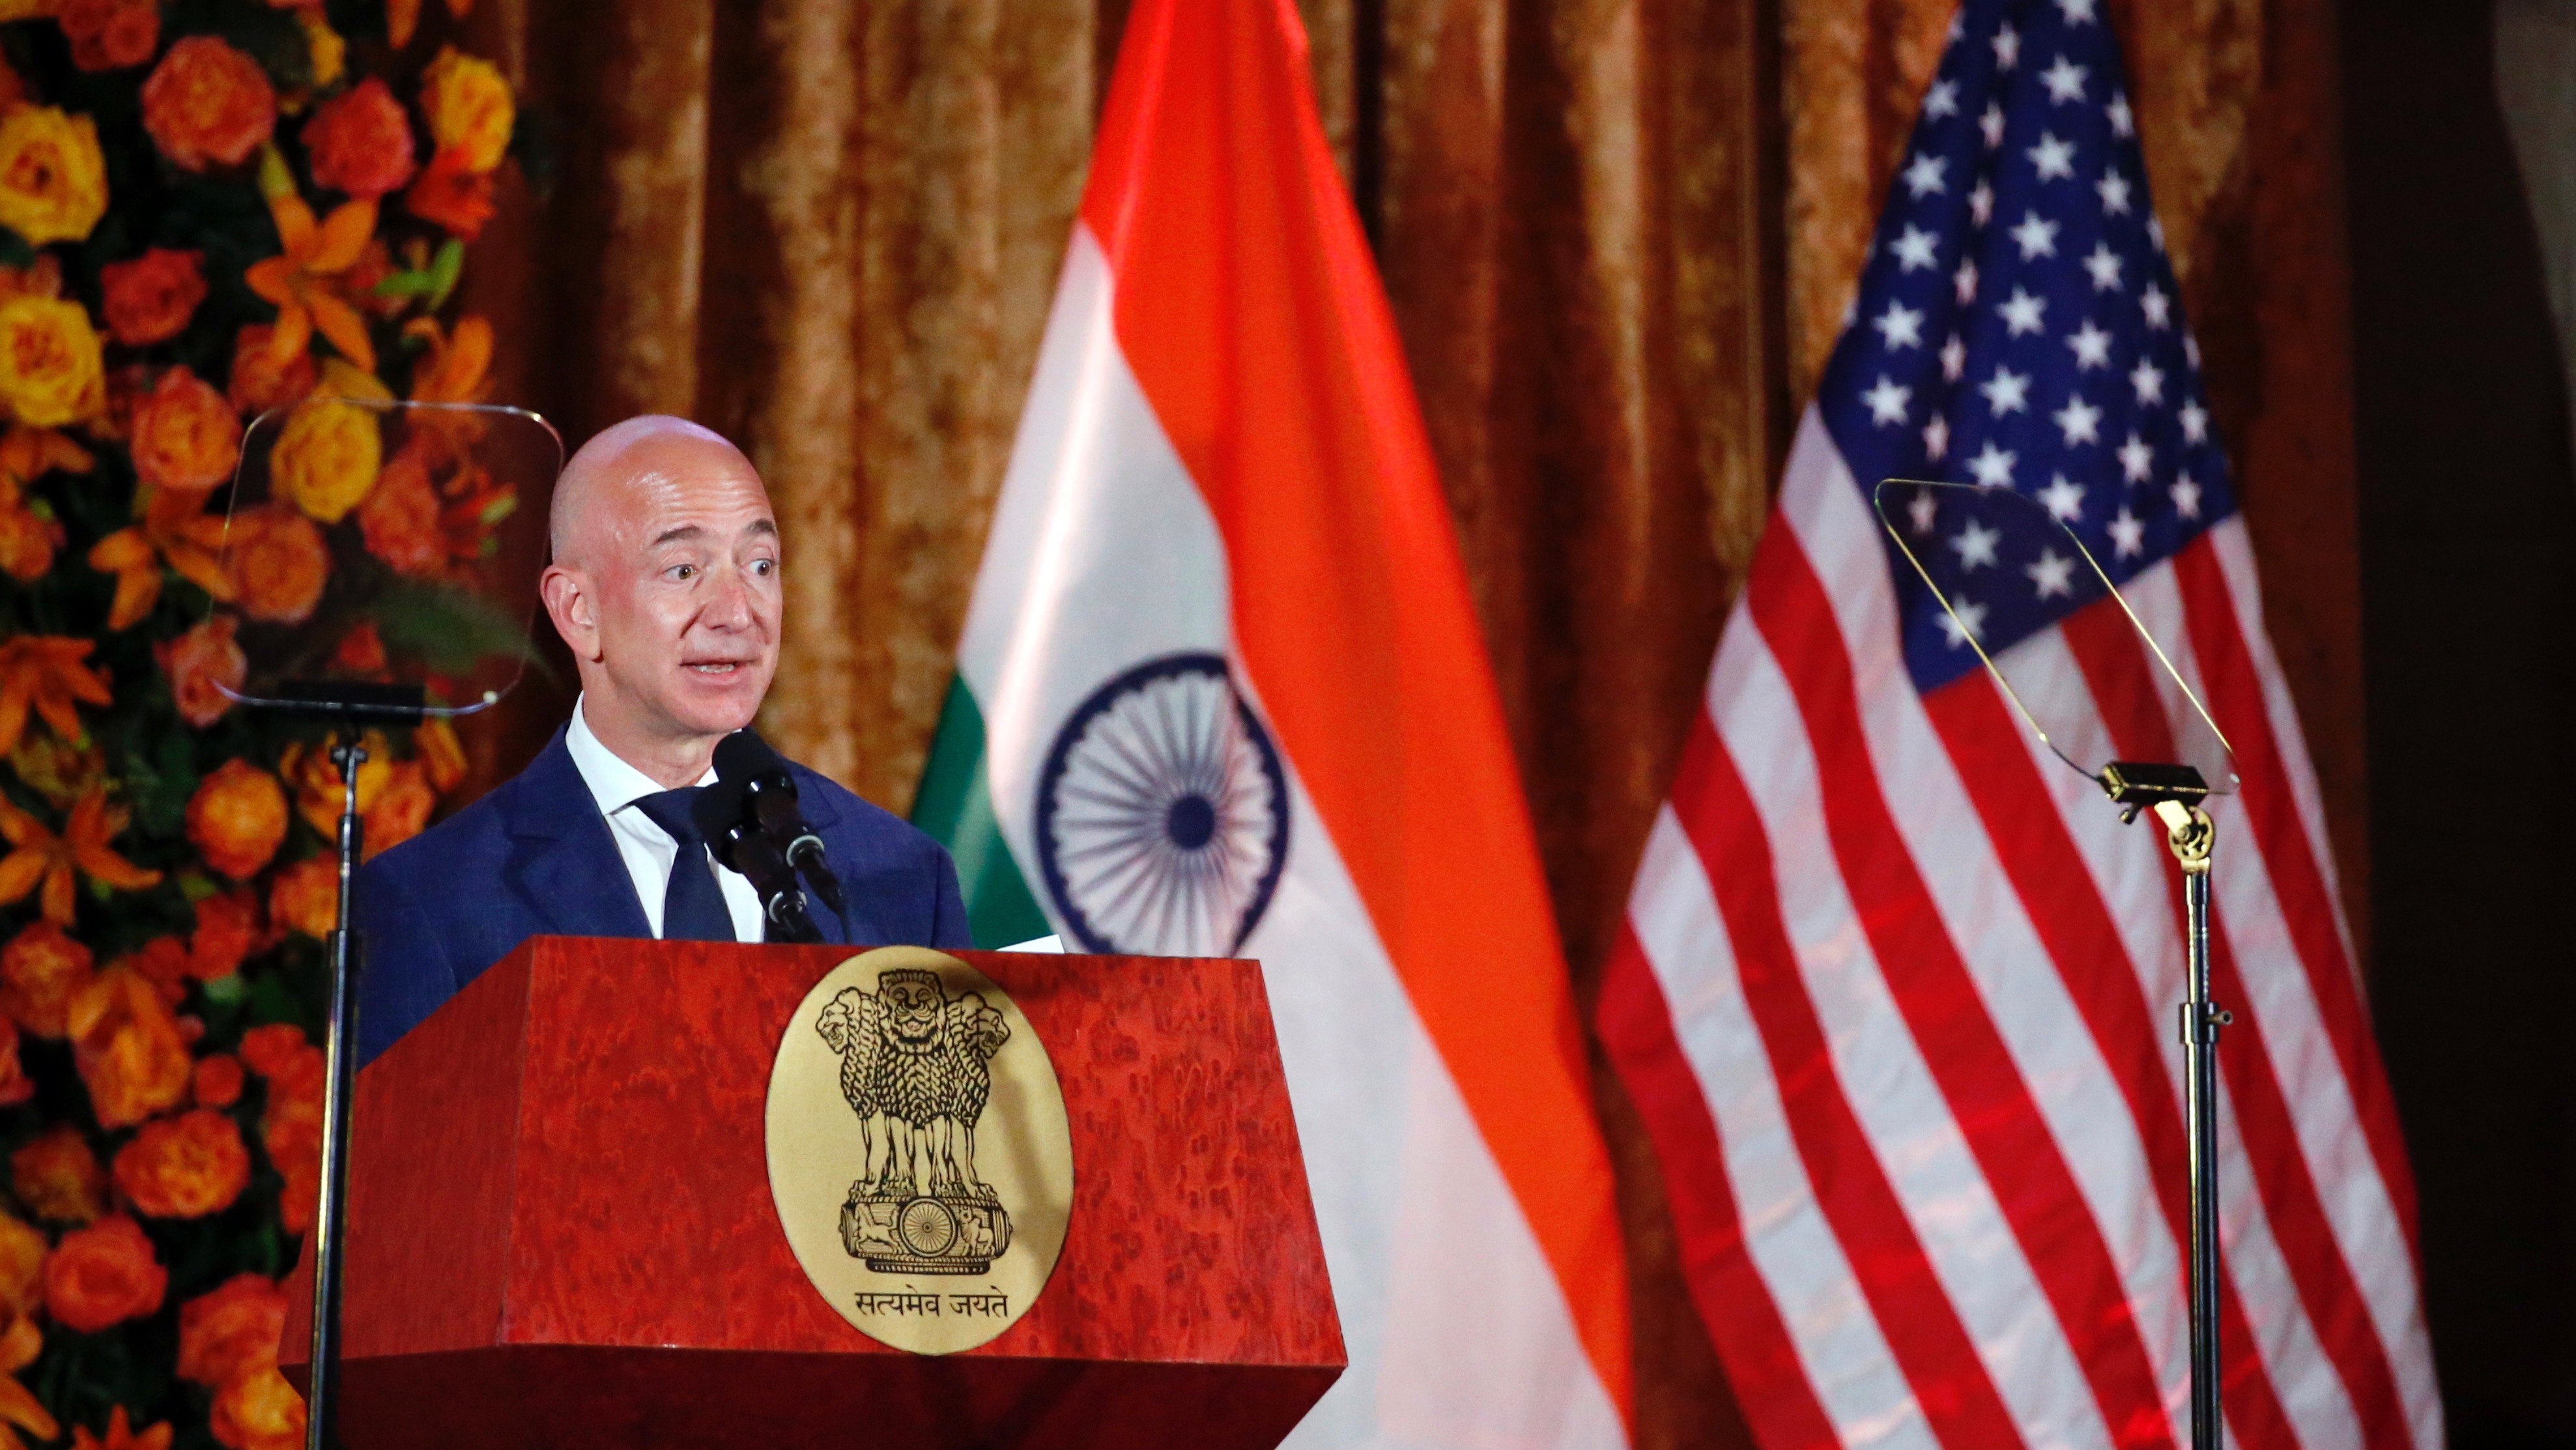 Amazon founder and CEO Jeff Bezos speaks after receiving the Global Leadership Award during the U.S.-India Business Council 41st Annual Leadership Summit, Tuesday, June 7, 2016 in Washington. (AP Photo/Alex Brandon)